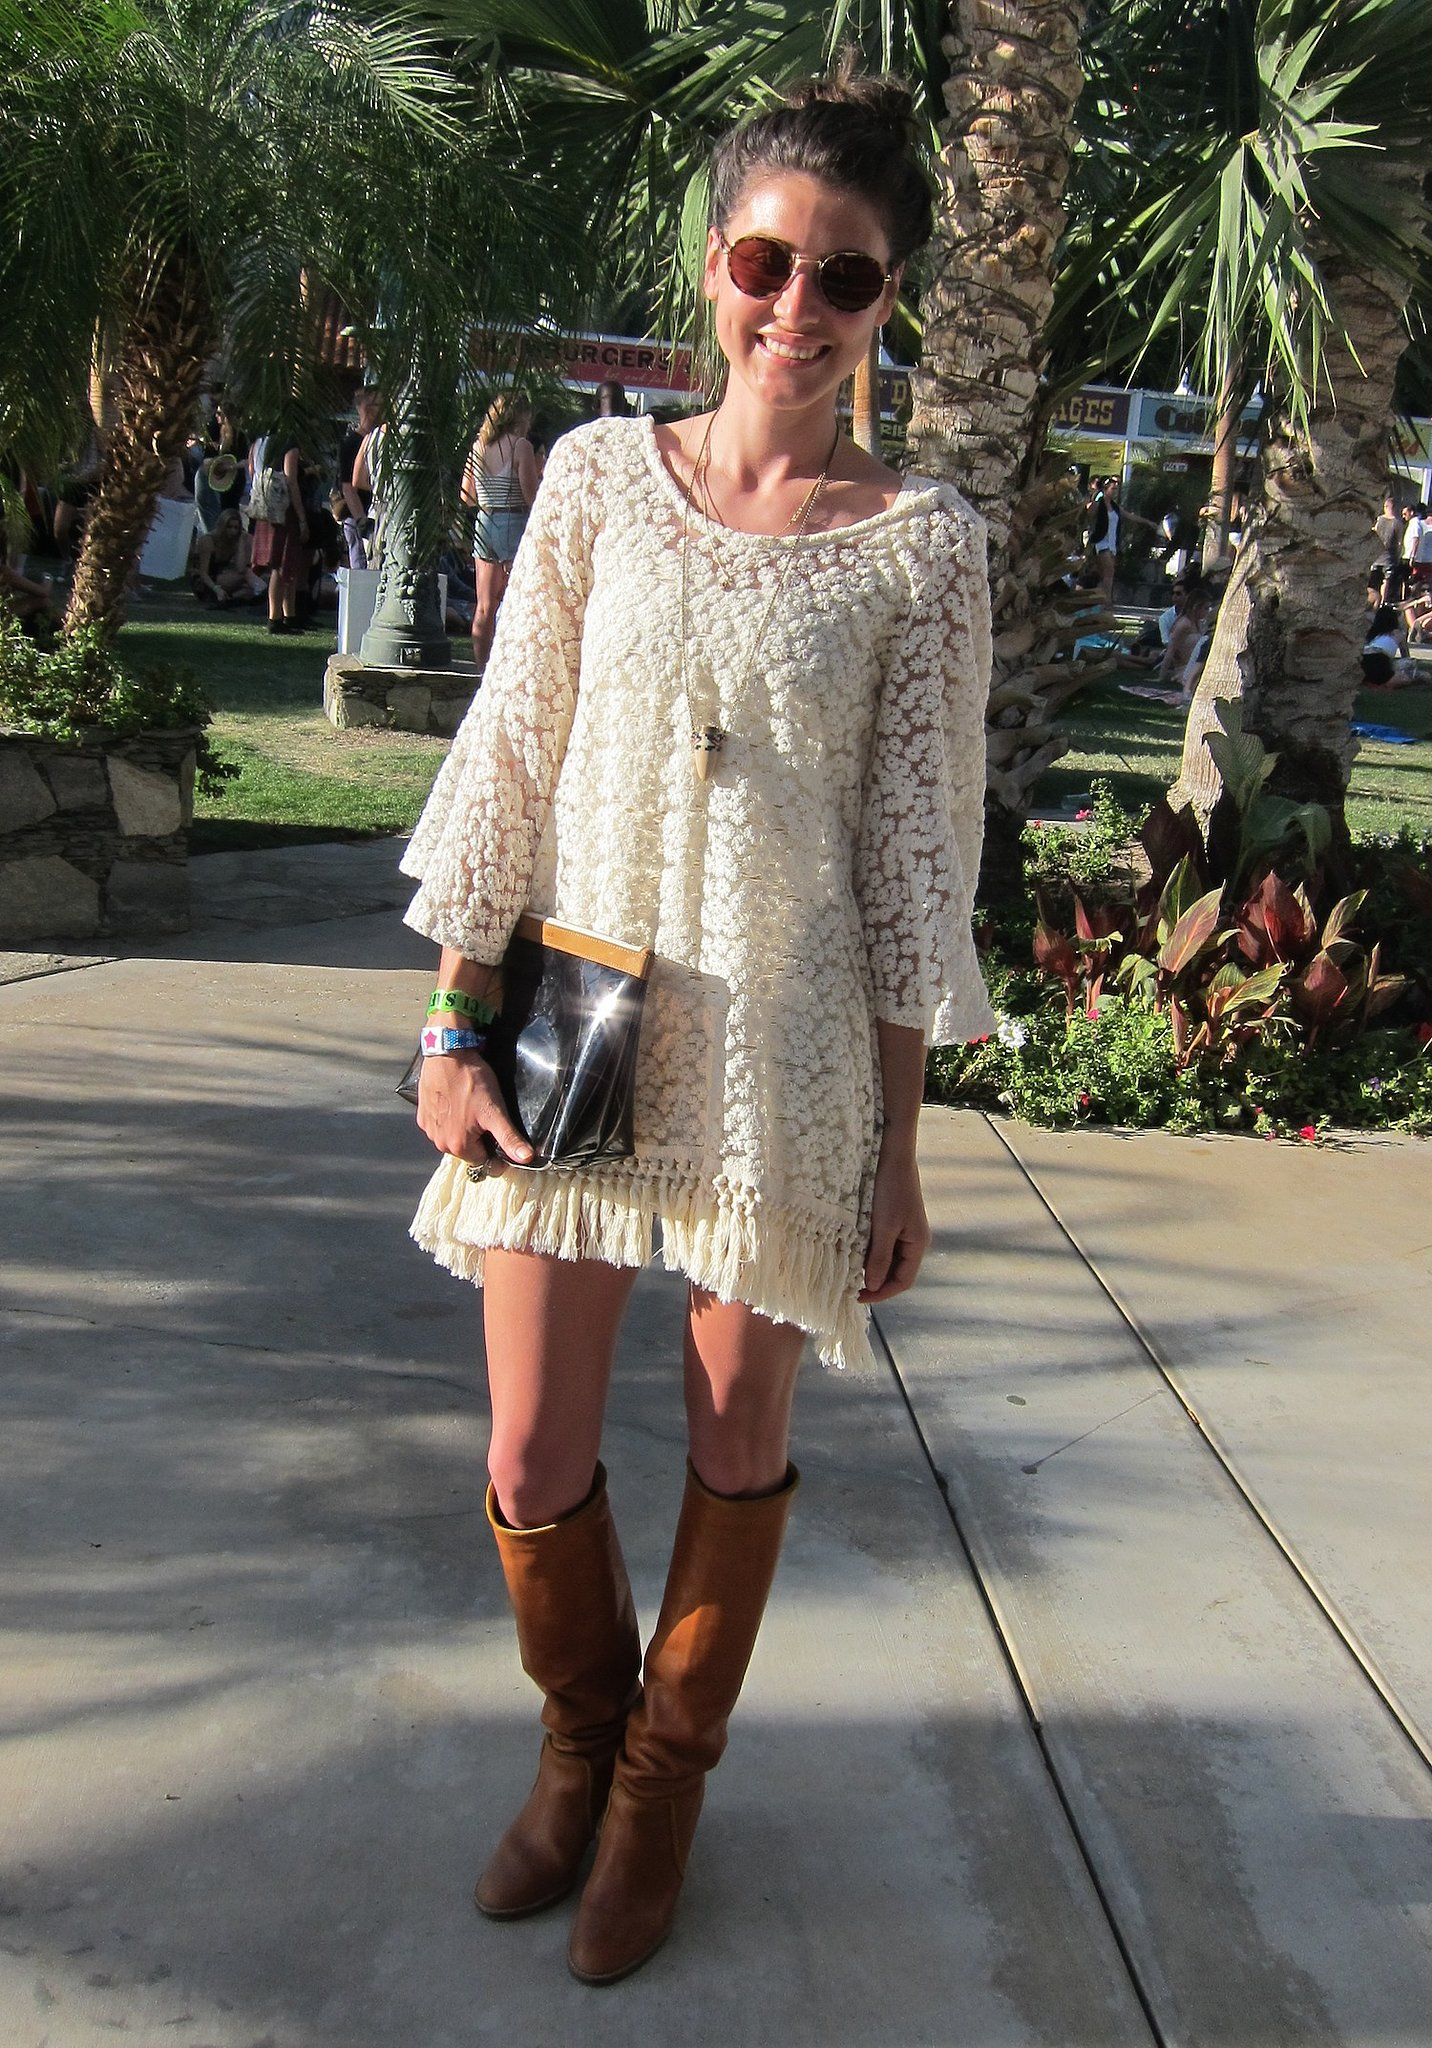 This festivalgoer looked '70s cool in a lace dress and knee-high boots. Source: Chi Diem Chau